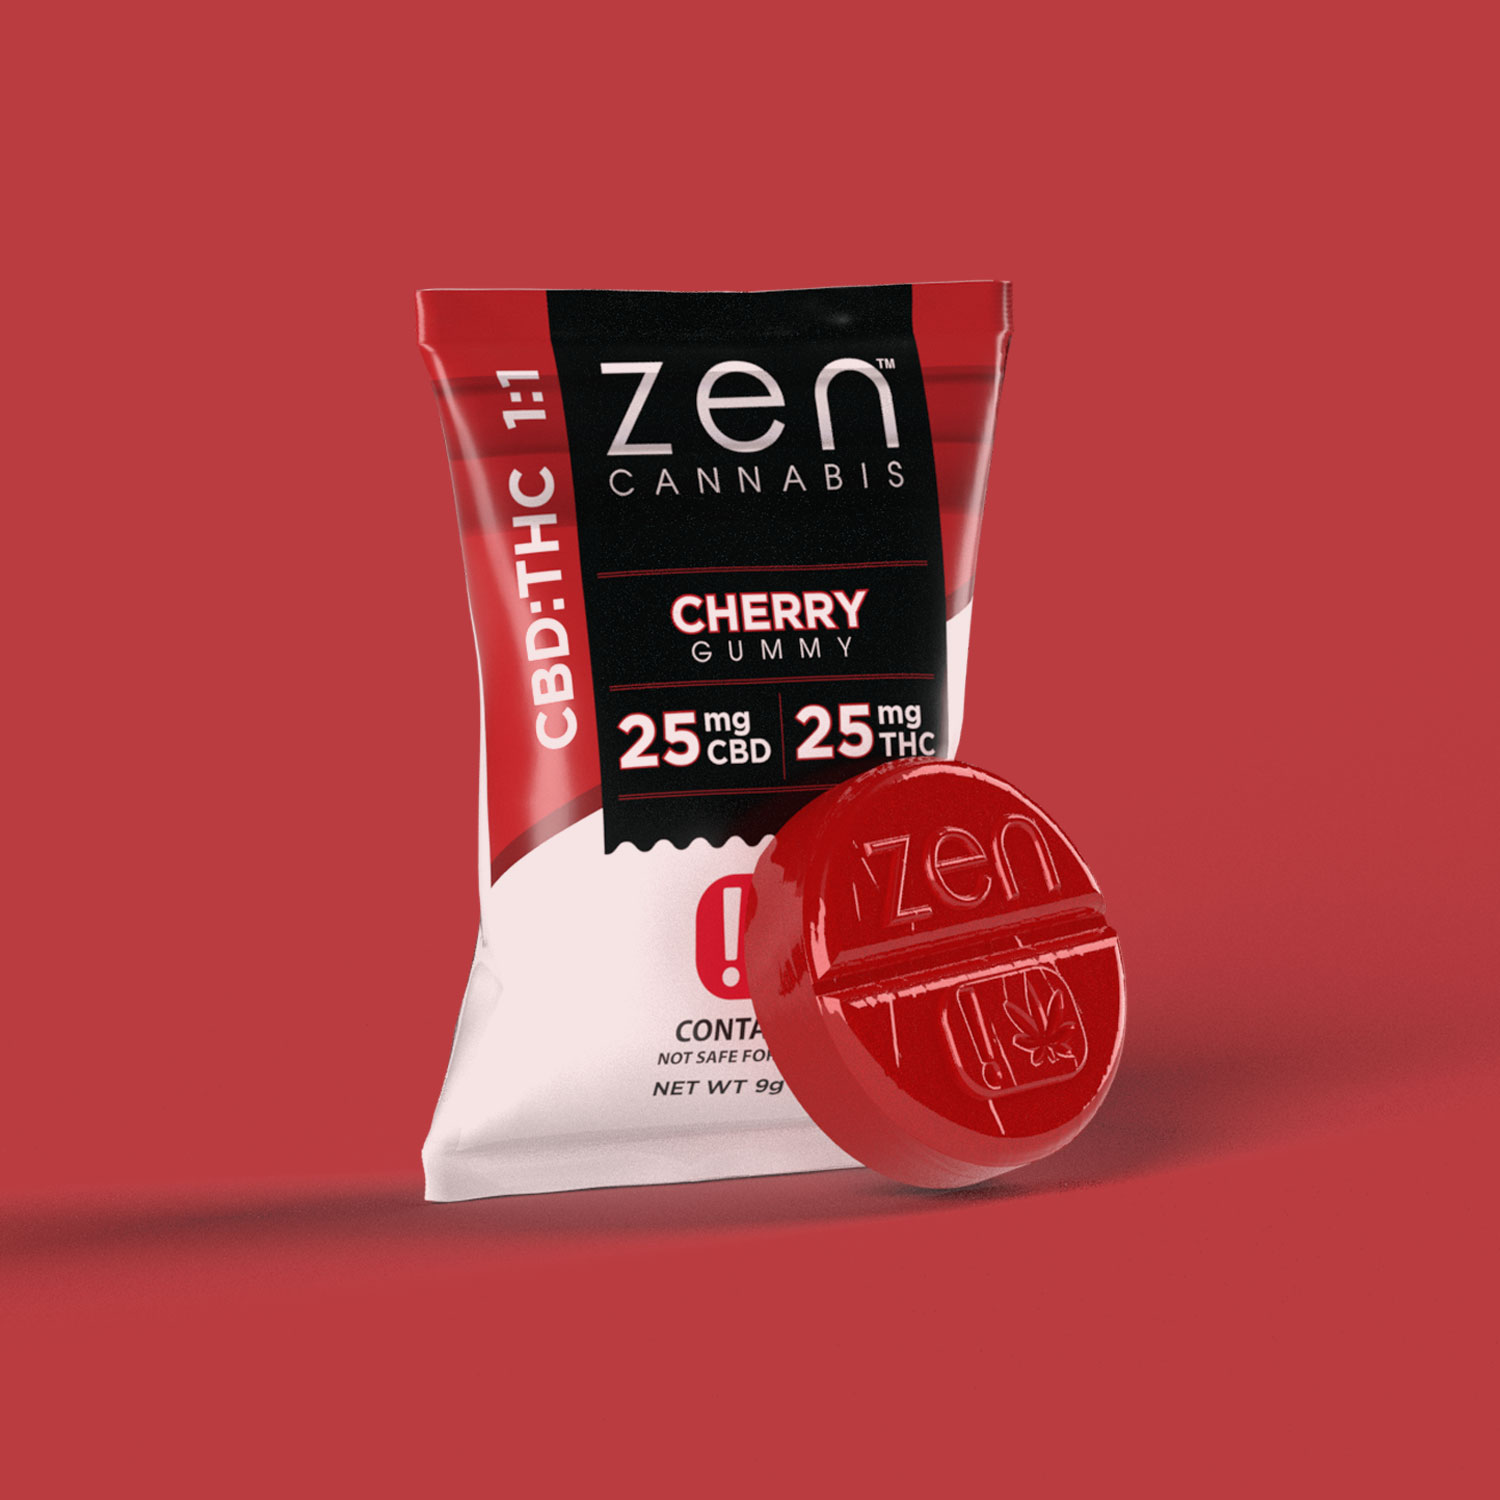 CBD:THC | 1:1 A rush of rich and bold cherry flavor to soothe your body and mind. Contains 25mg THC and 25mg CBD. Gluten & fat-free